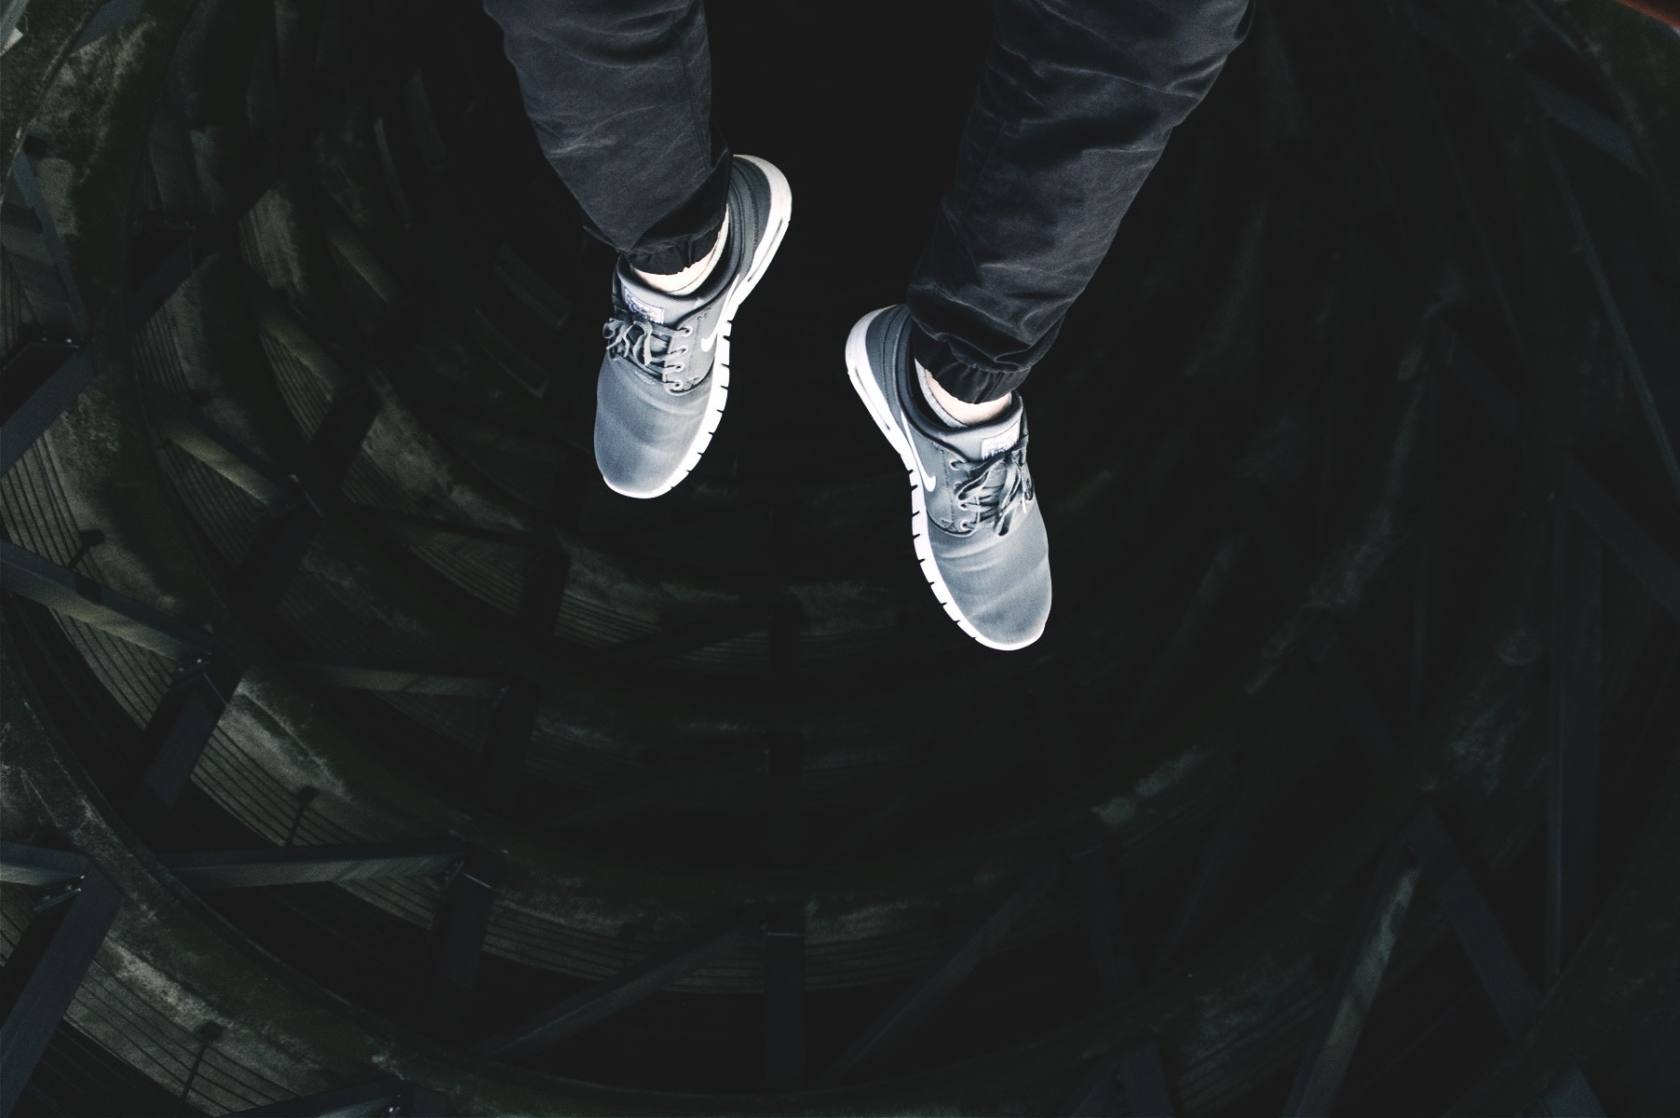 A man's feet, looking down from the top of a building